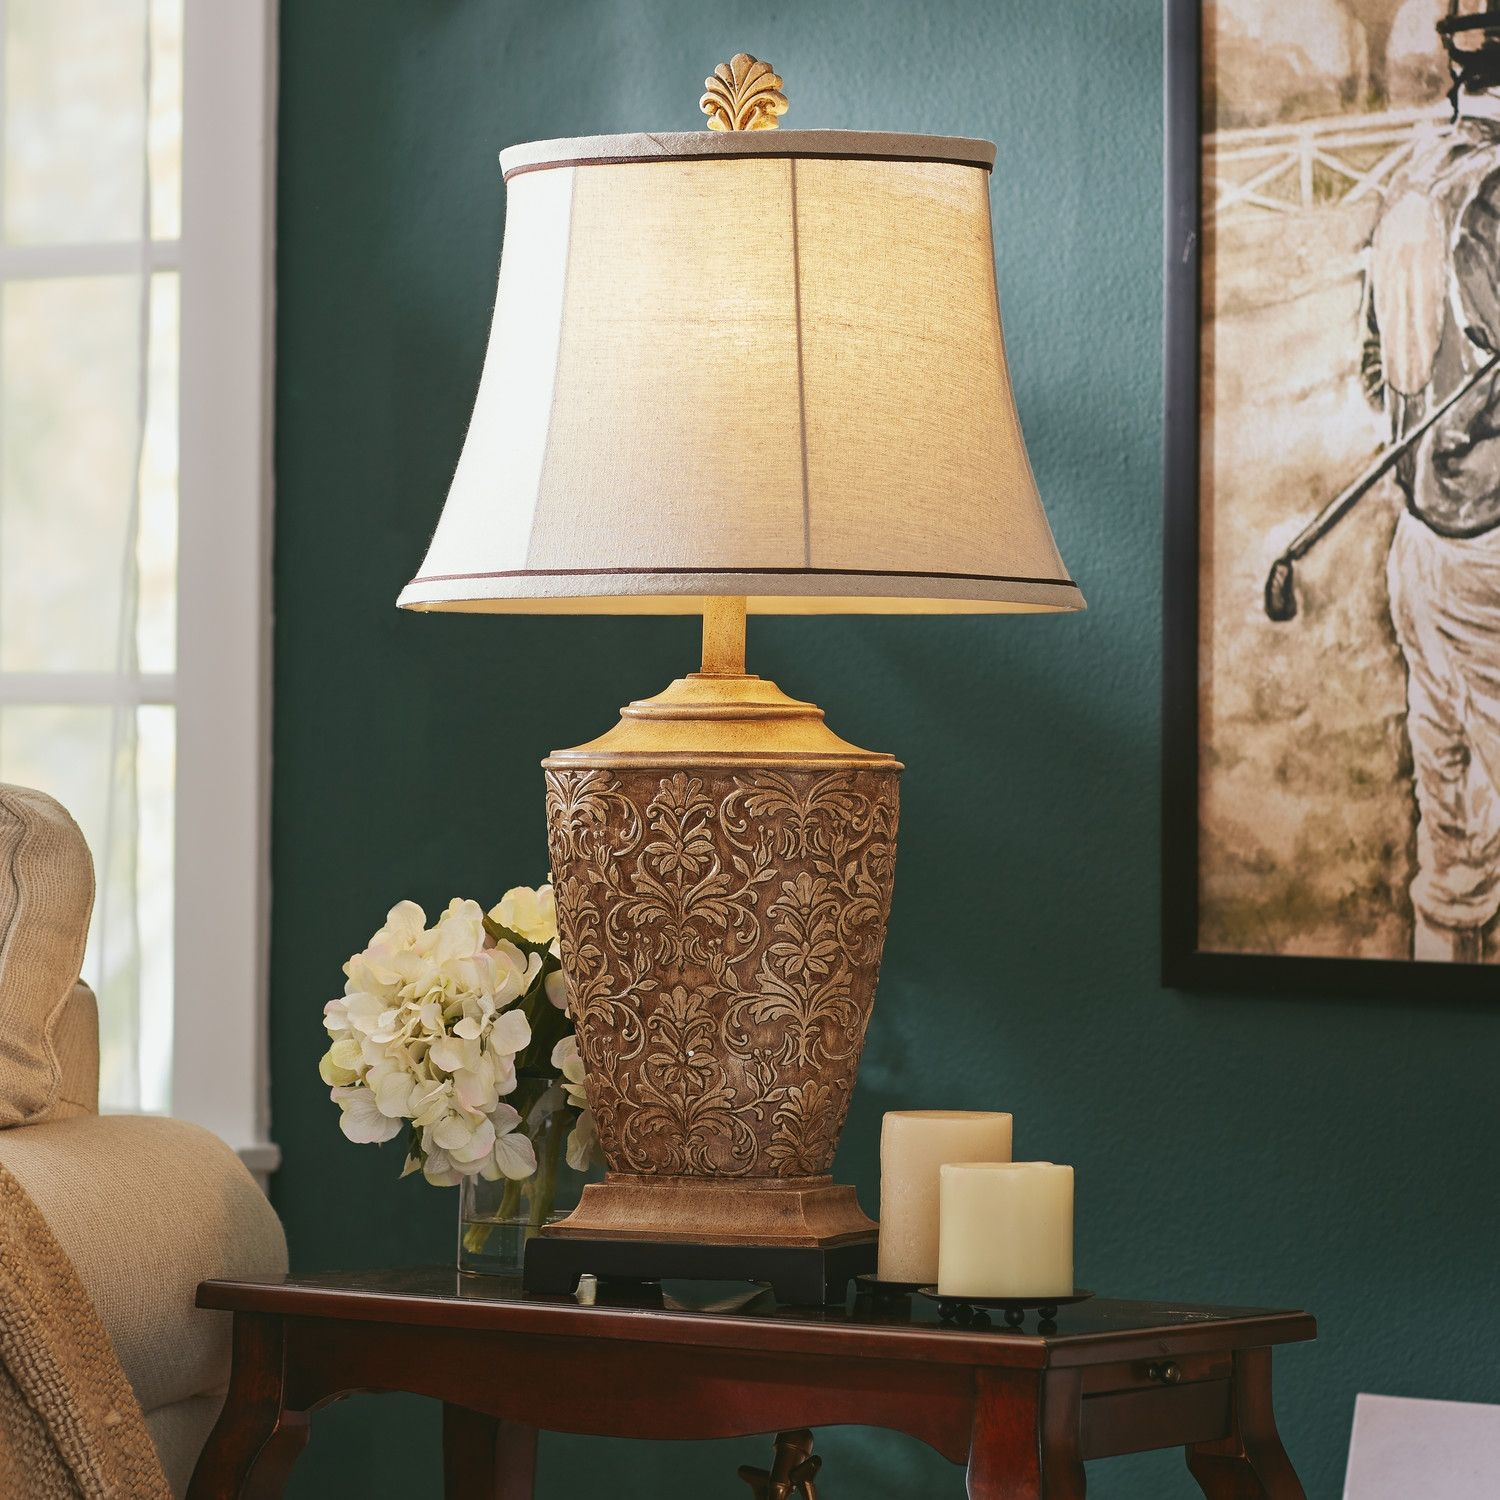 10 elegant and warming cheap table lamps for living room - Living Room Table Lamps